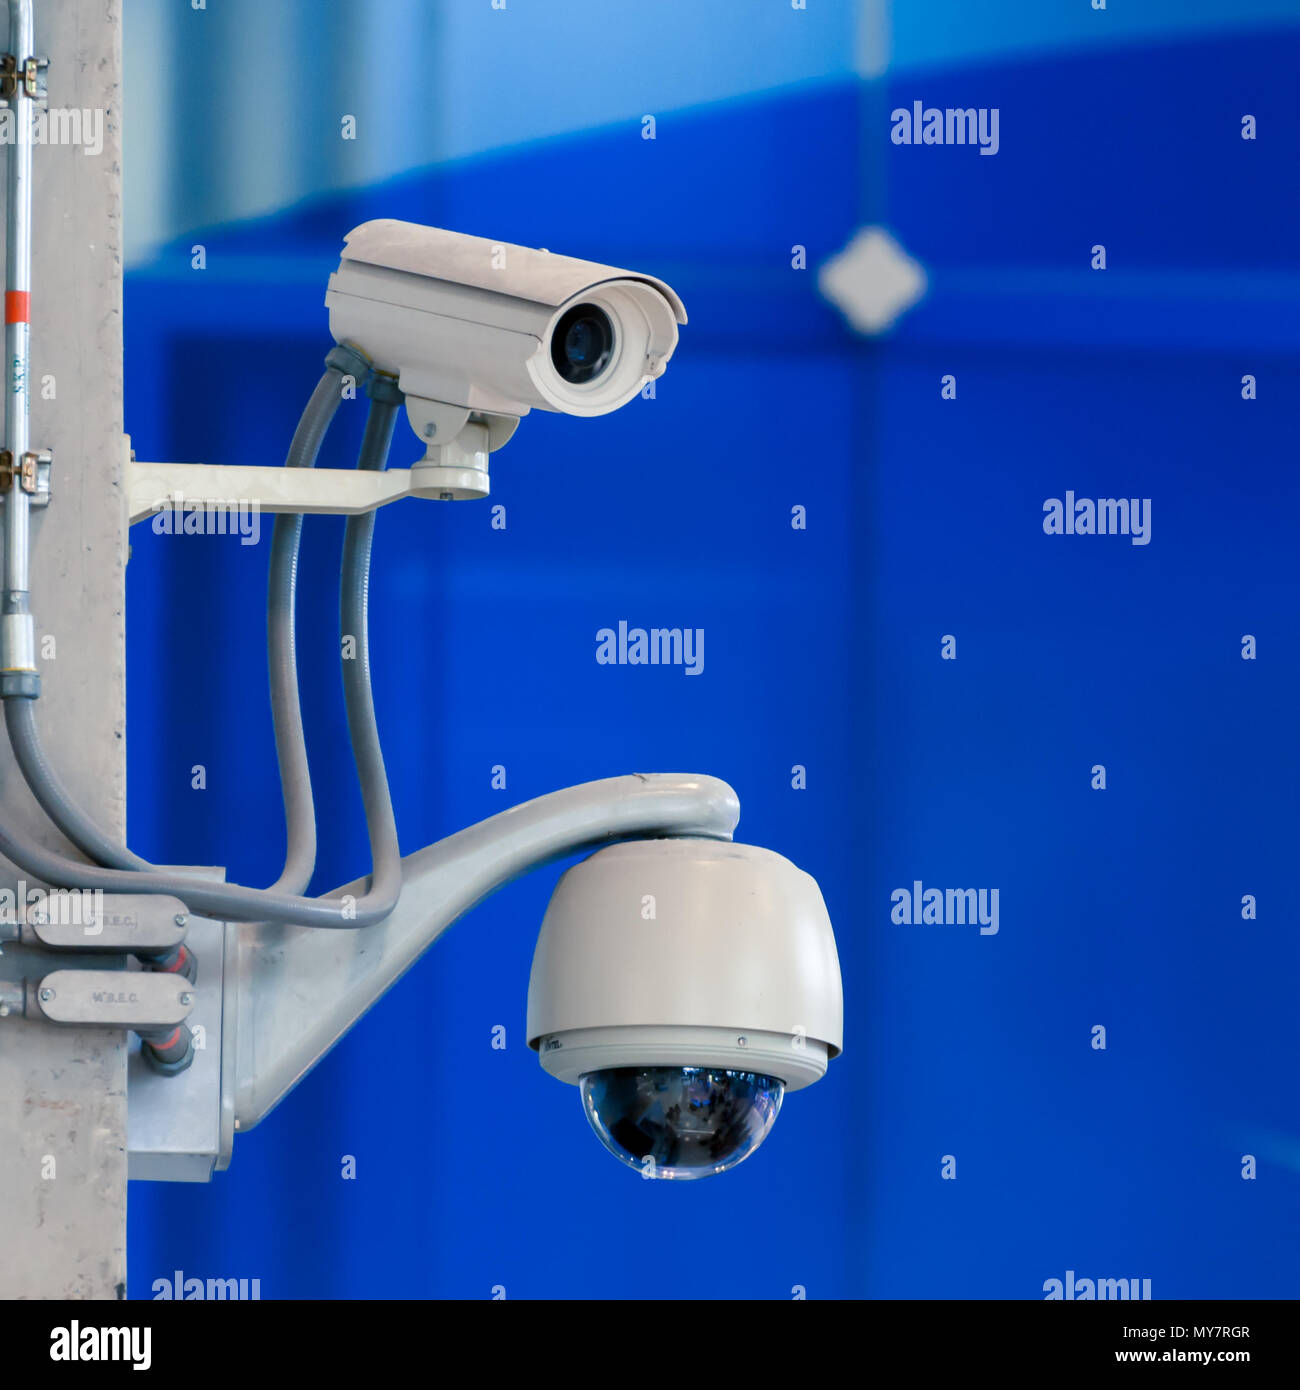 CCTV camera or surveillance operating on blue wall bakcground - Stock Image